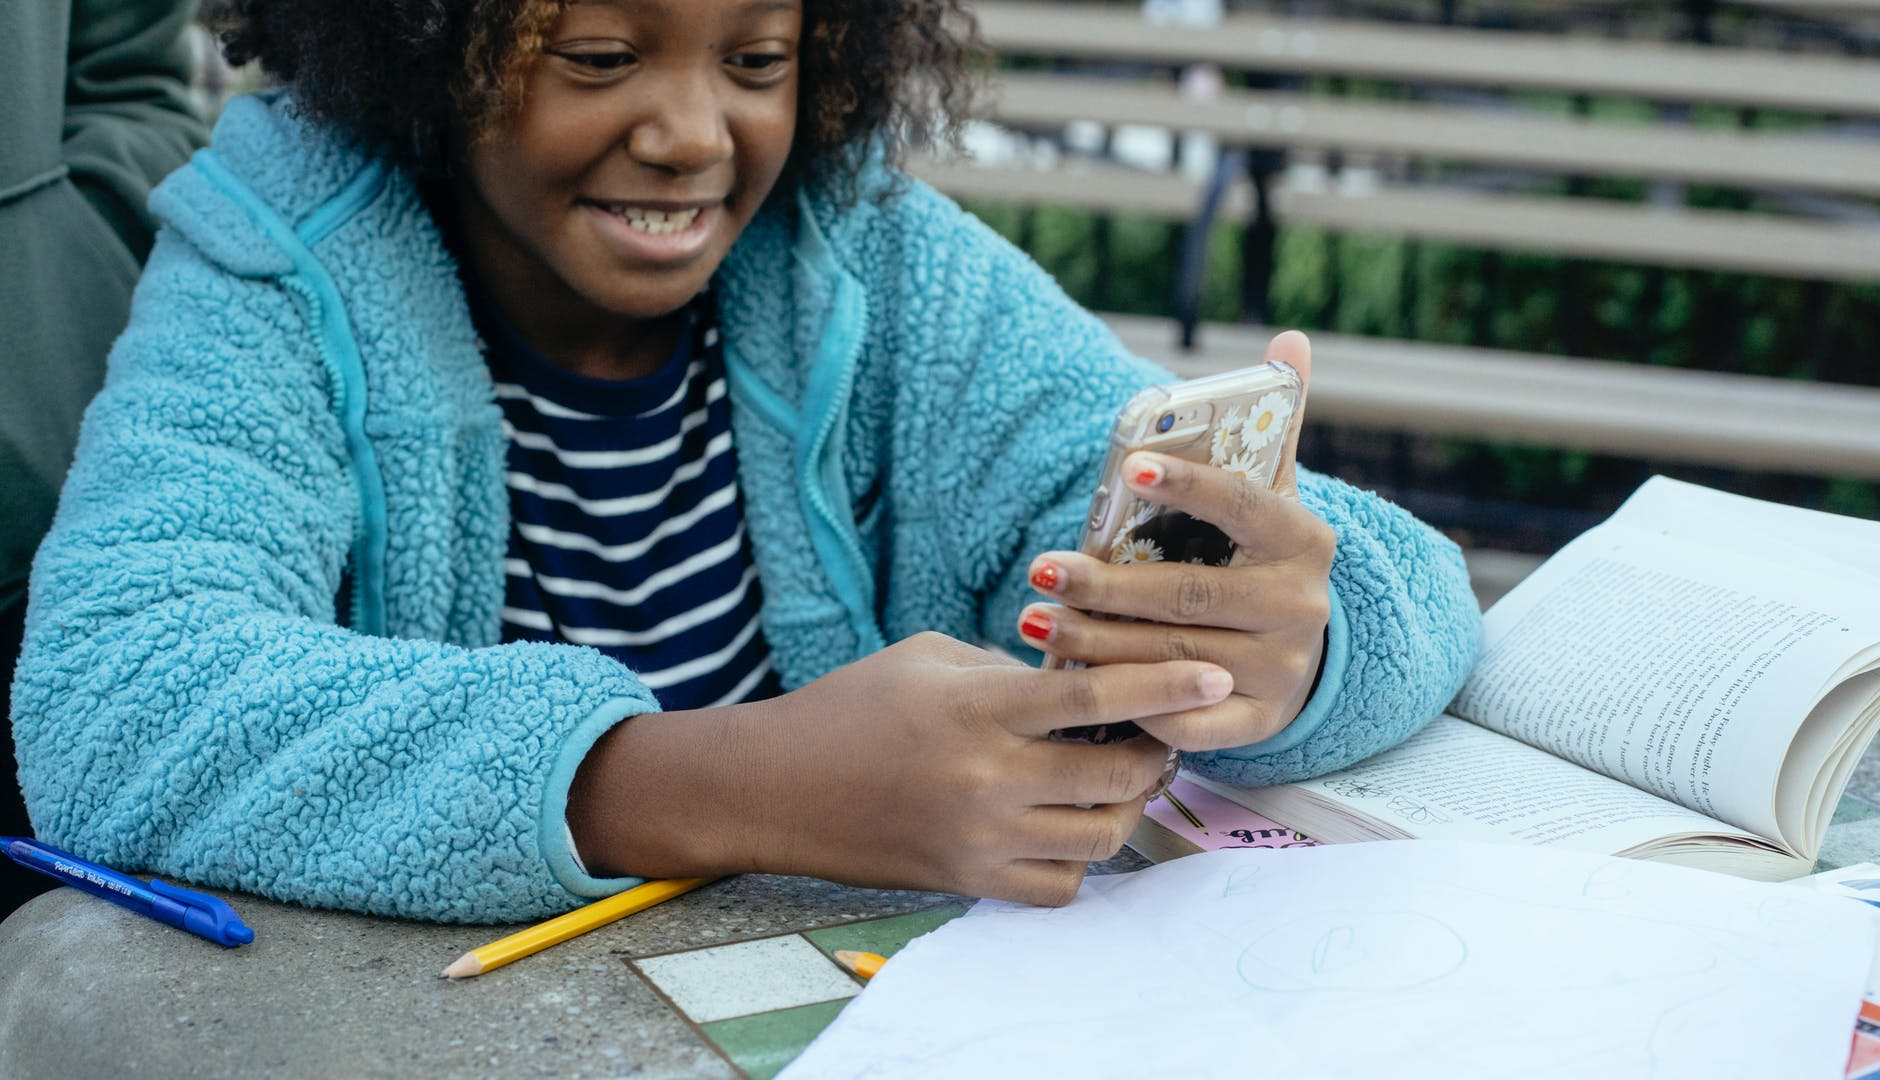 black girl browsing smartphone during homework